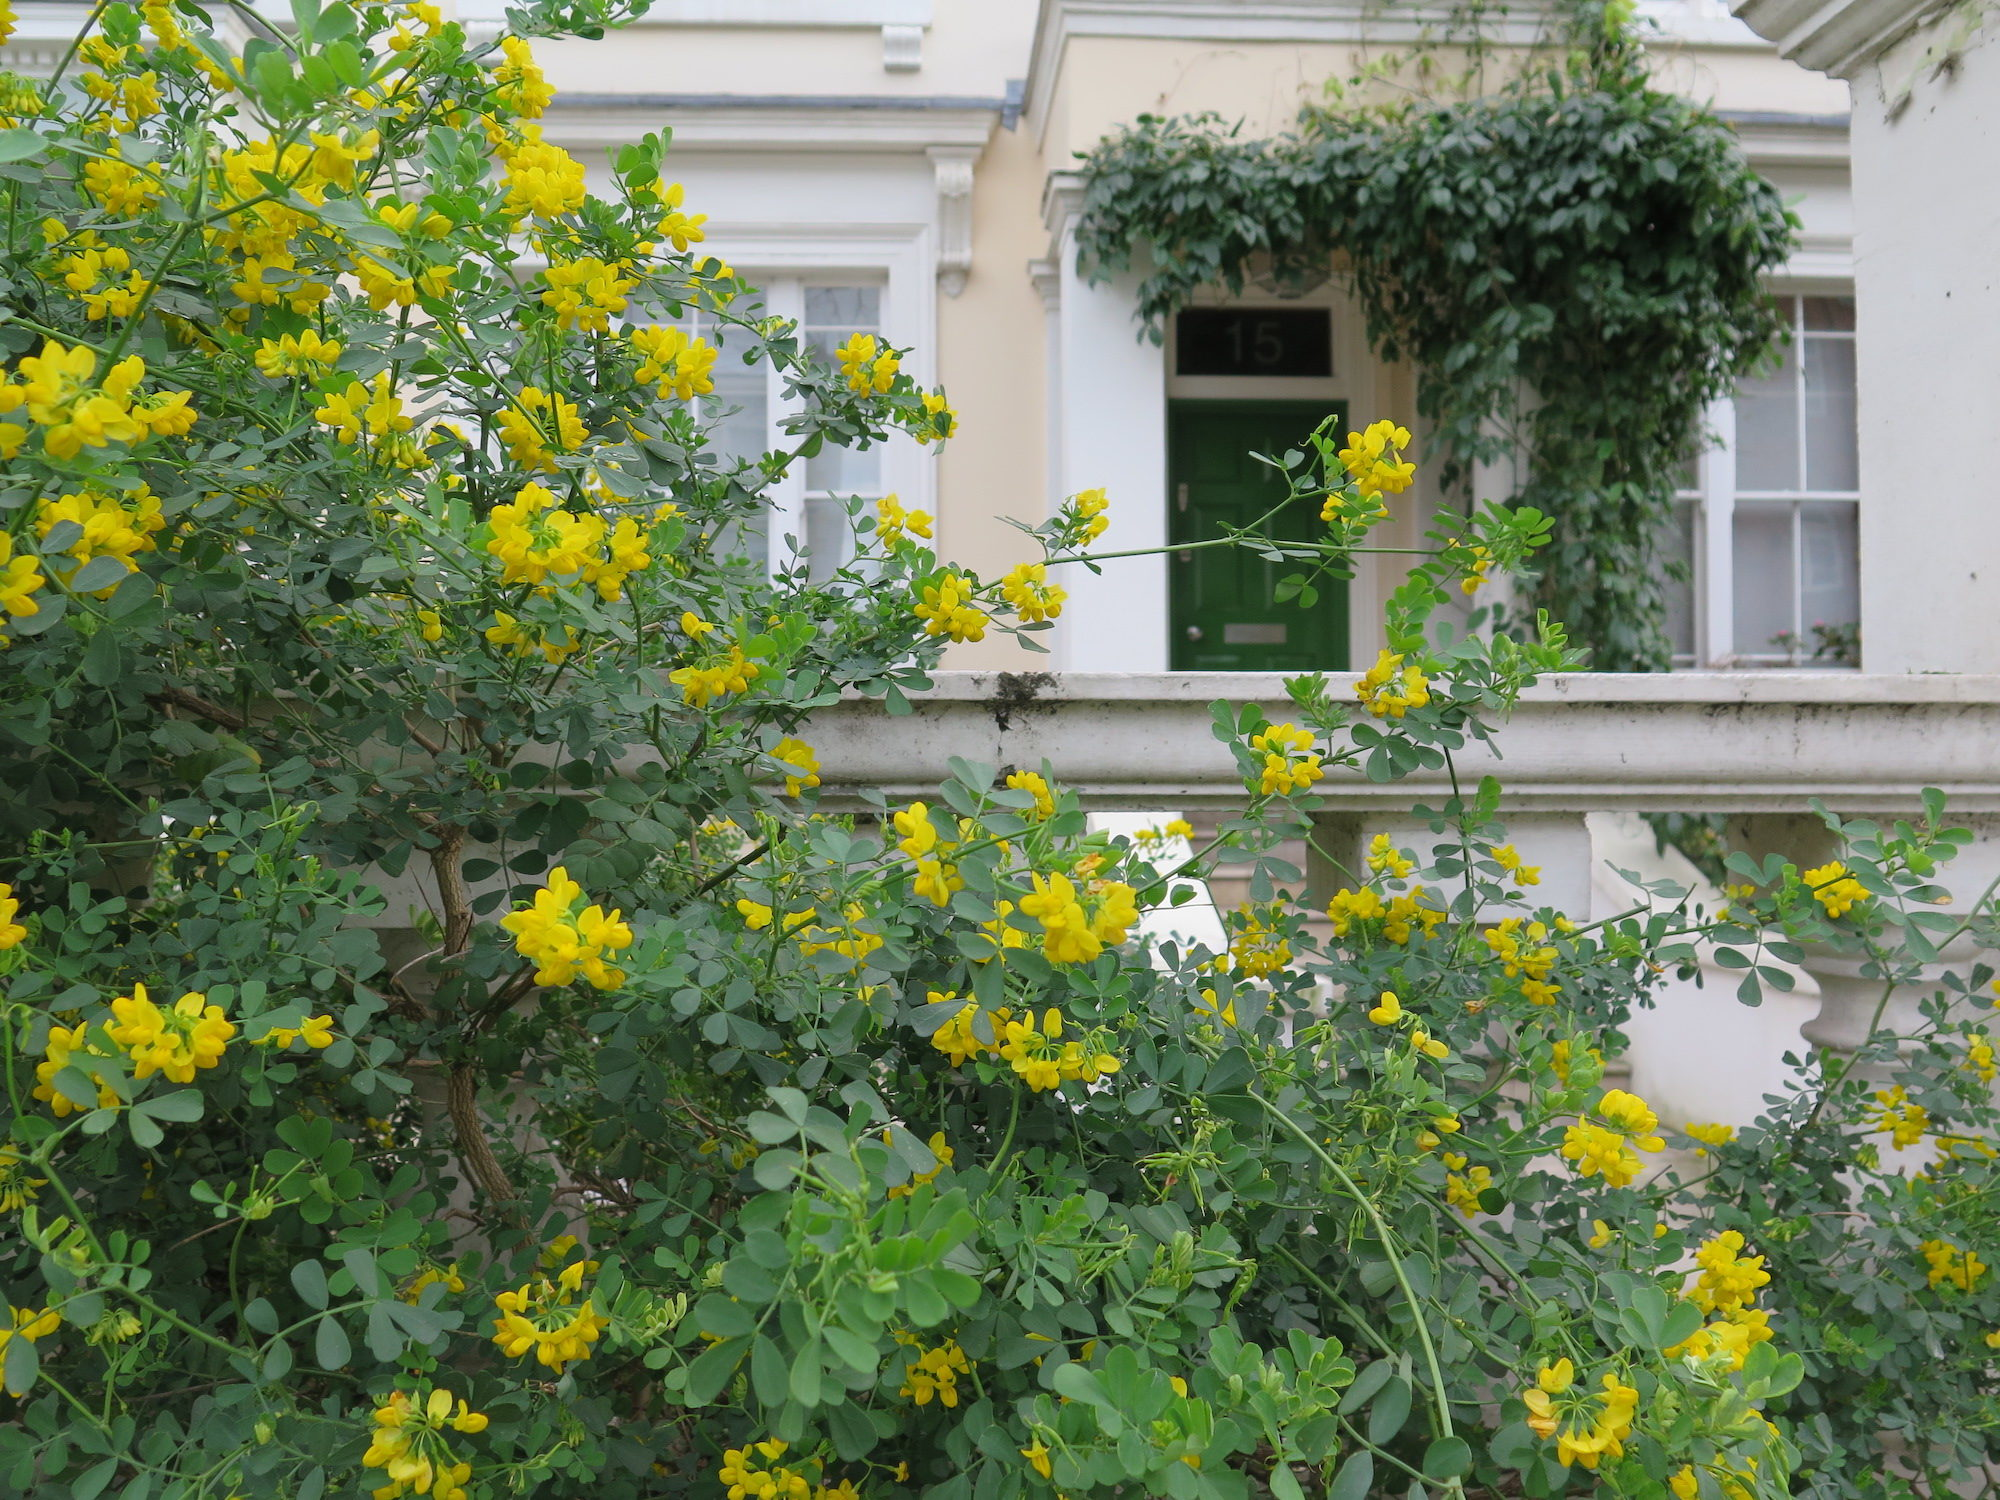 London is greener than Paris as there are more parks but also more trees and plant life in gardens and on side walks like this beautiful wild trees of yellow flowers in someone's front garden.